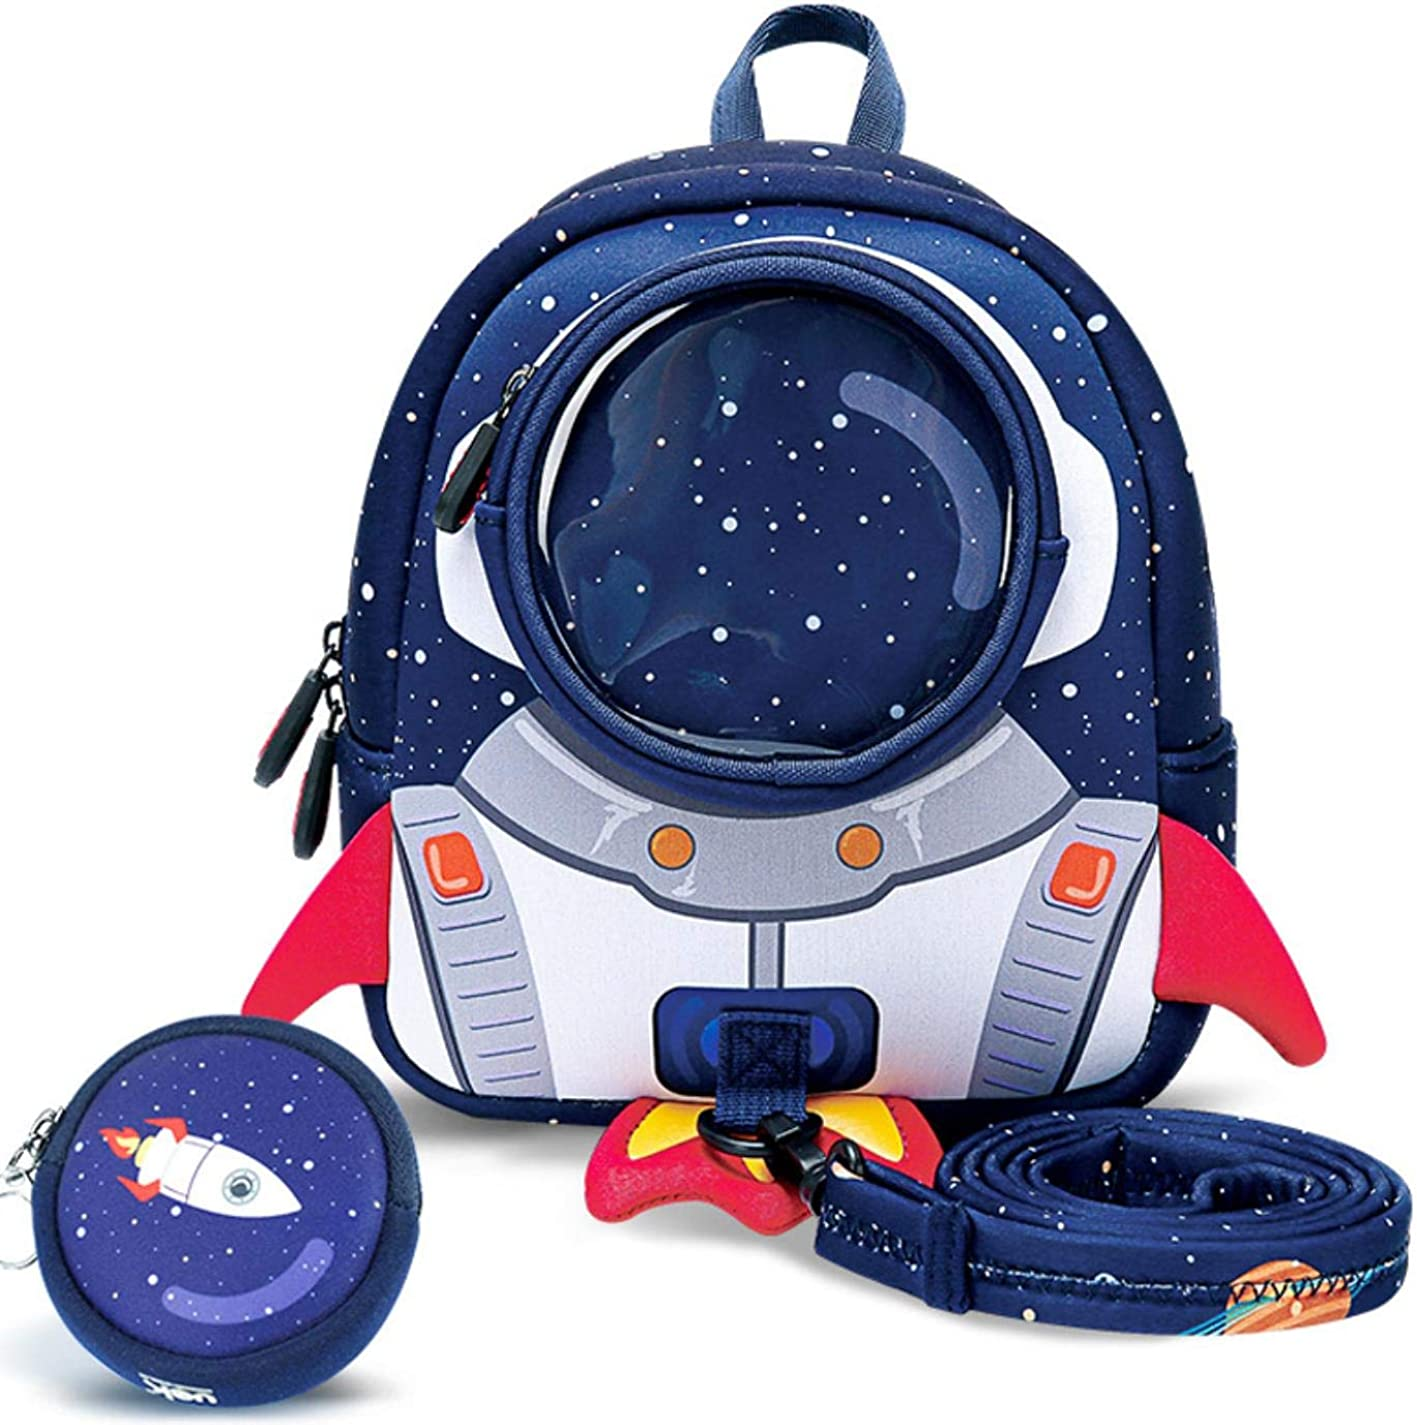 2019 new 3D cute anti-lost childrens backpack